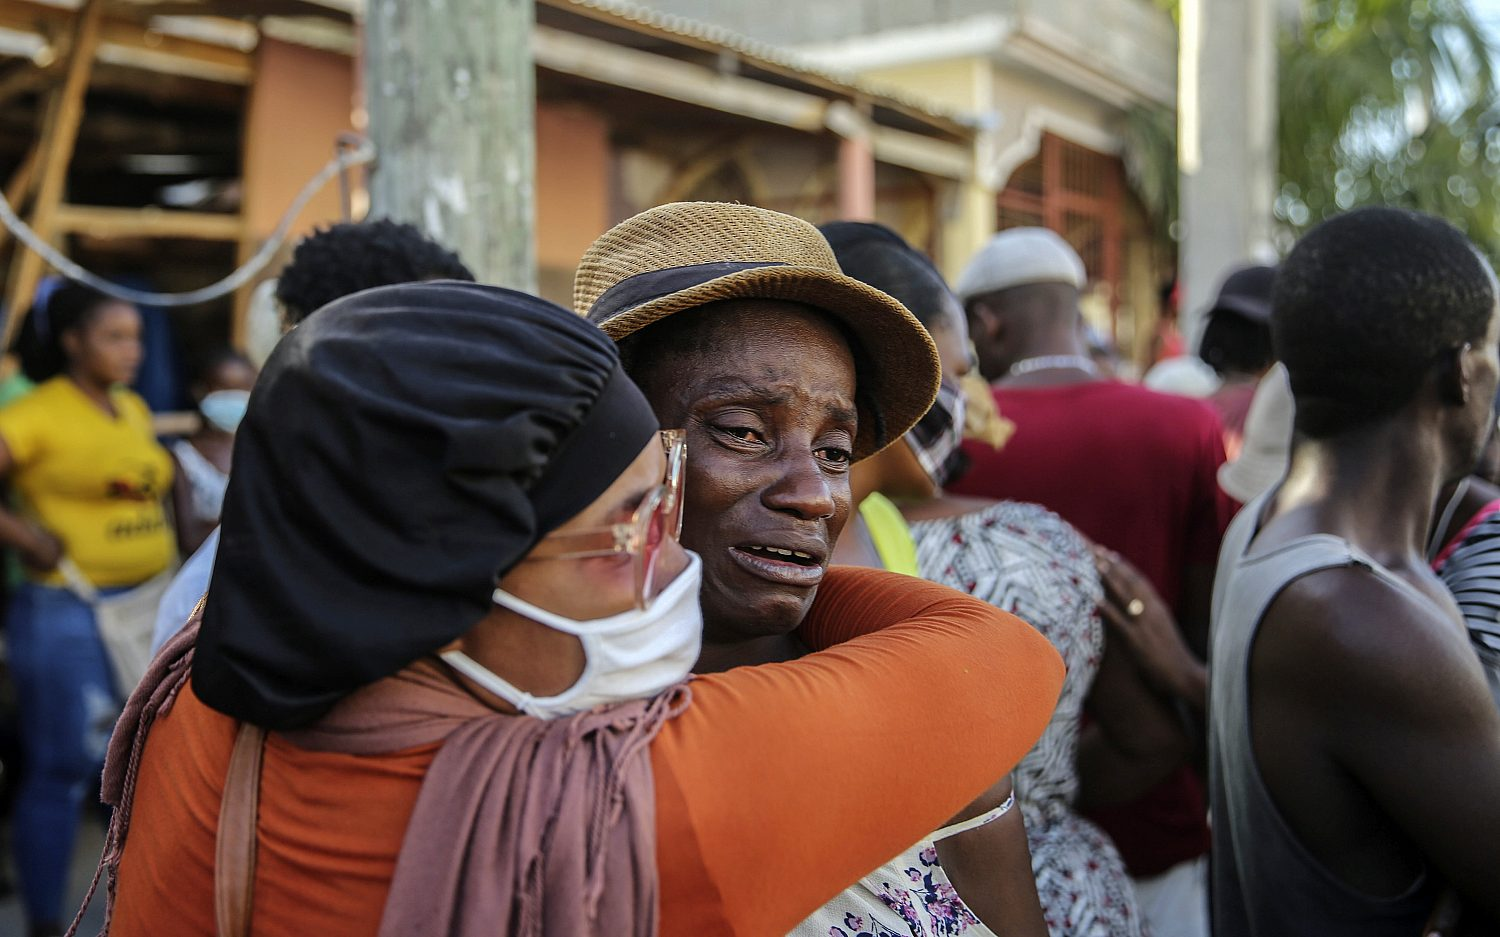 Battered Haiti faces another disaster